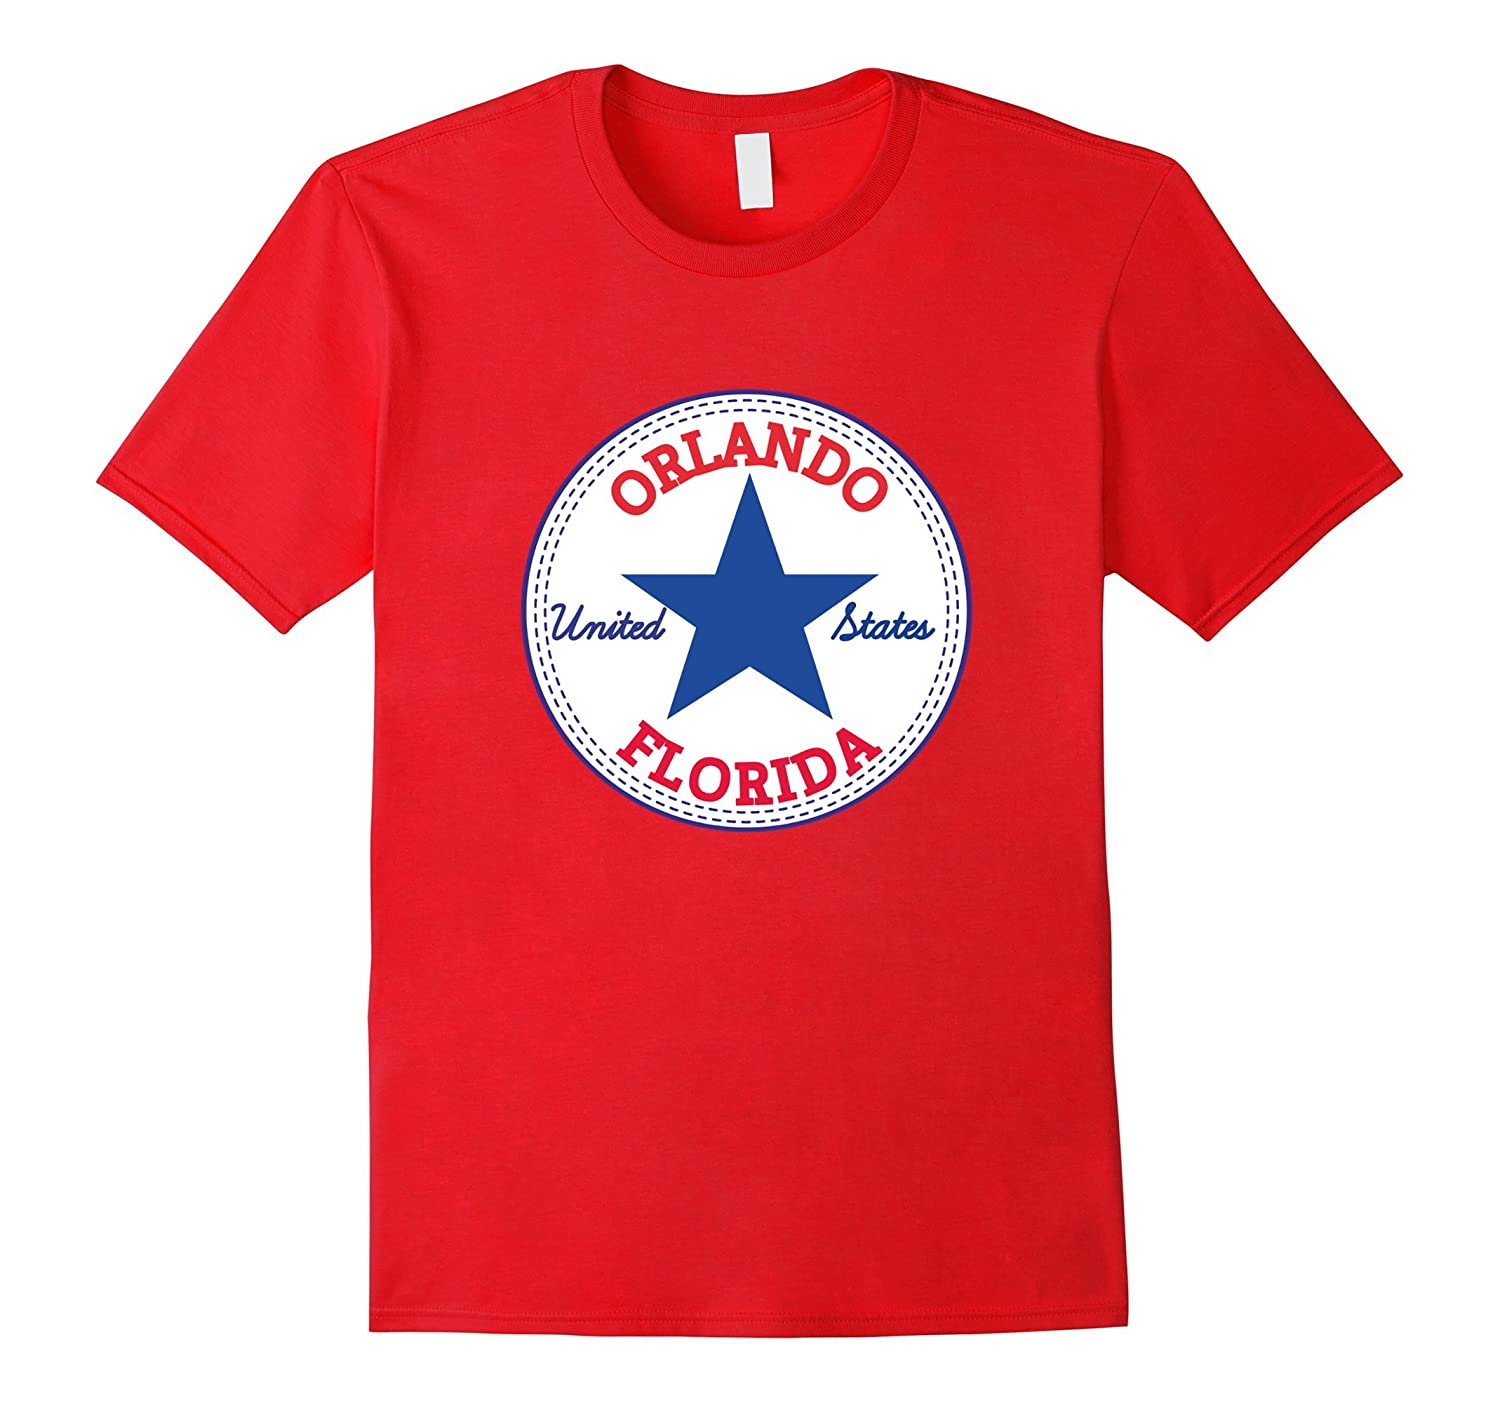 ORLANDO FLORIDA United States HOLIDAY T-Shirt relaxed fit-TH